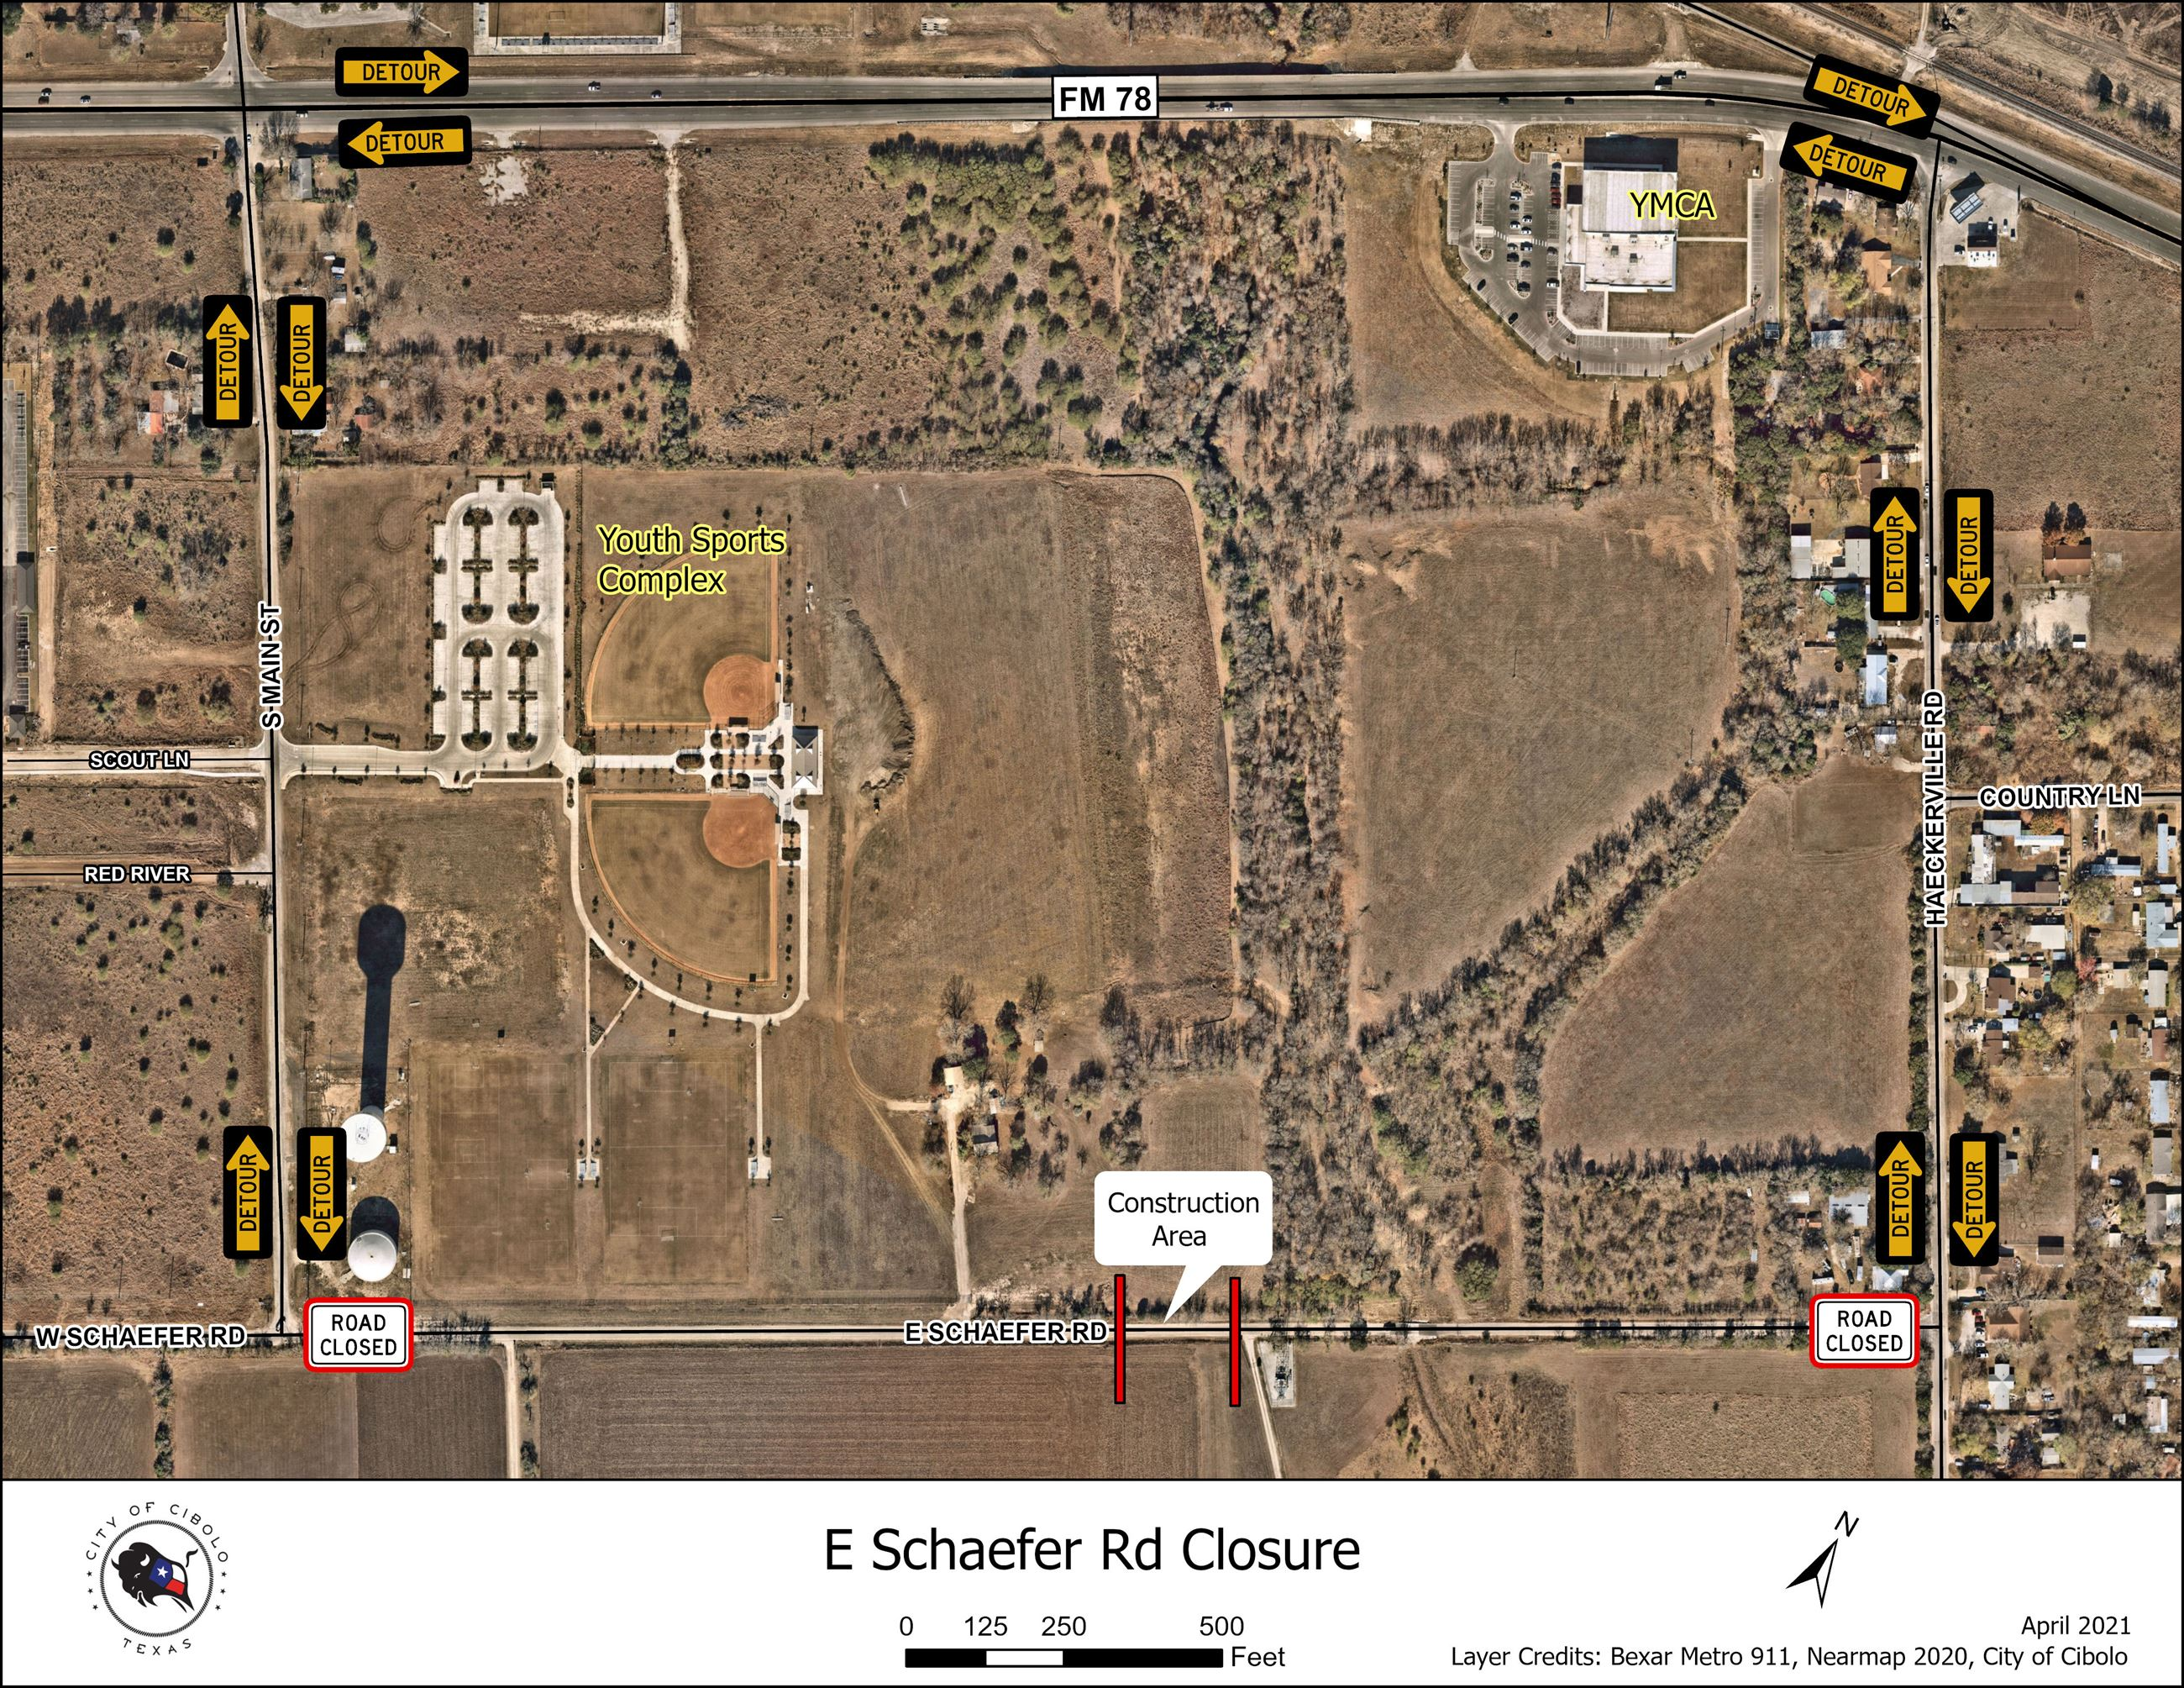 E Schaefer Rd Closure Apr2021